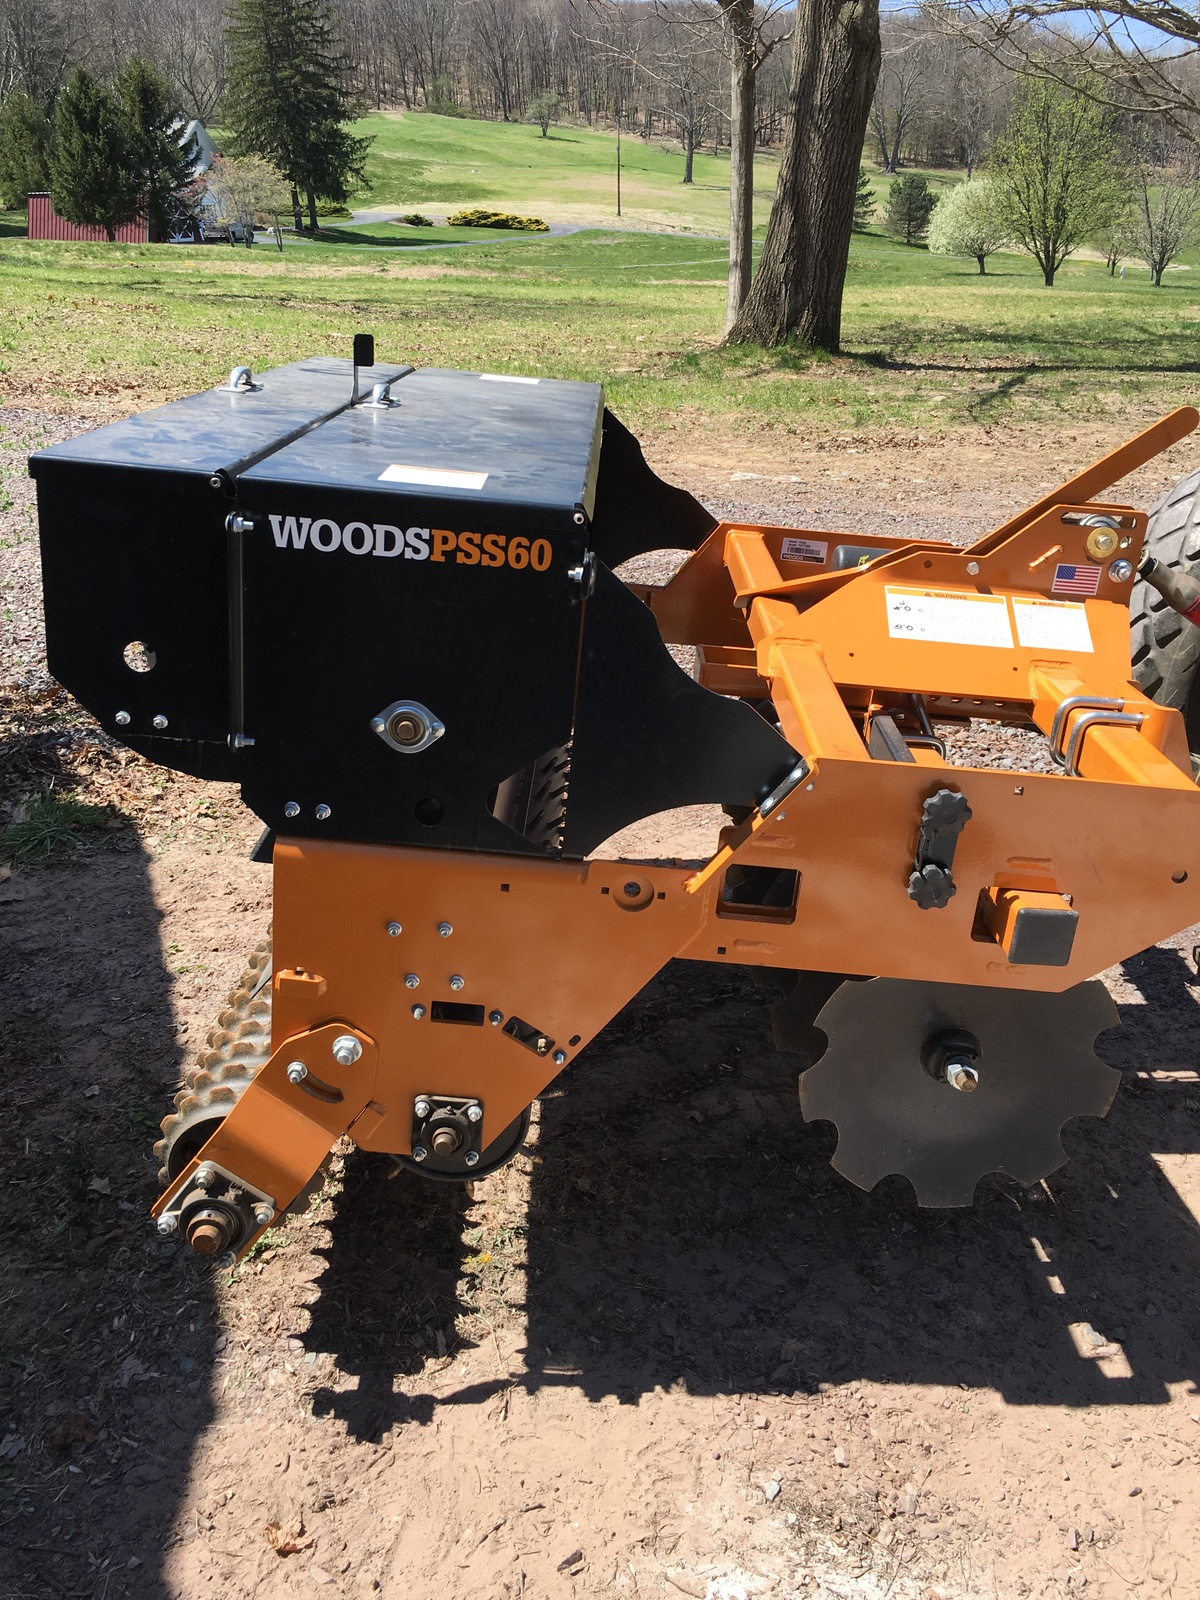 Wood PSS60 For Sale in Harding, PA 18643